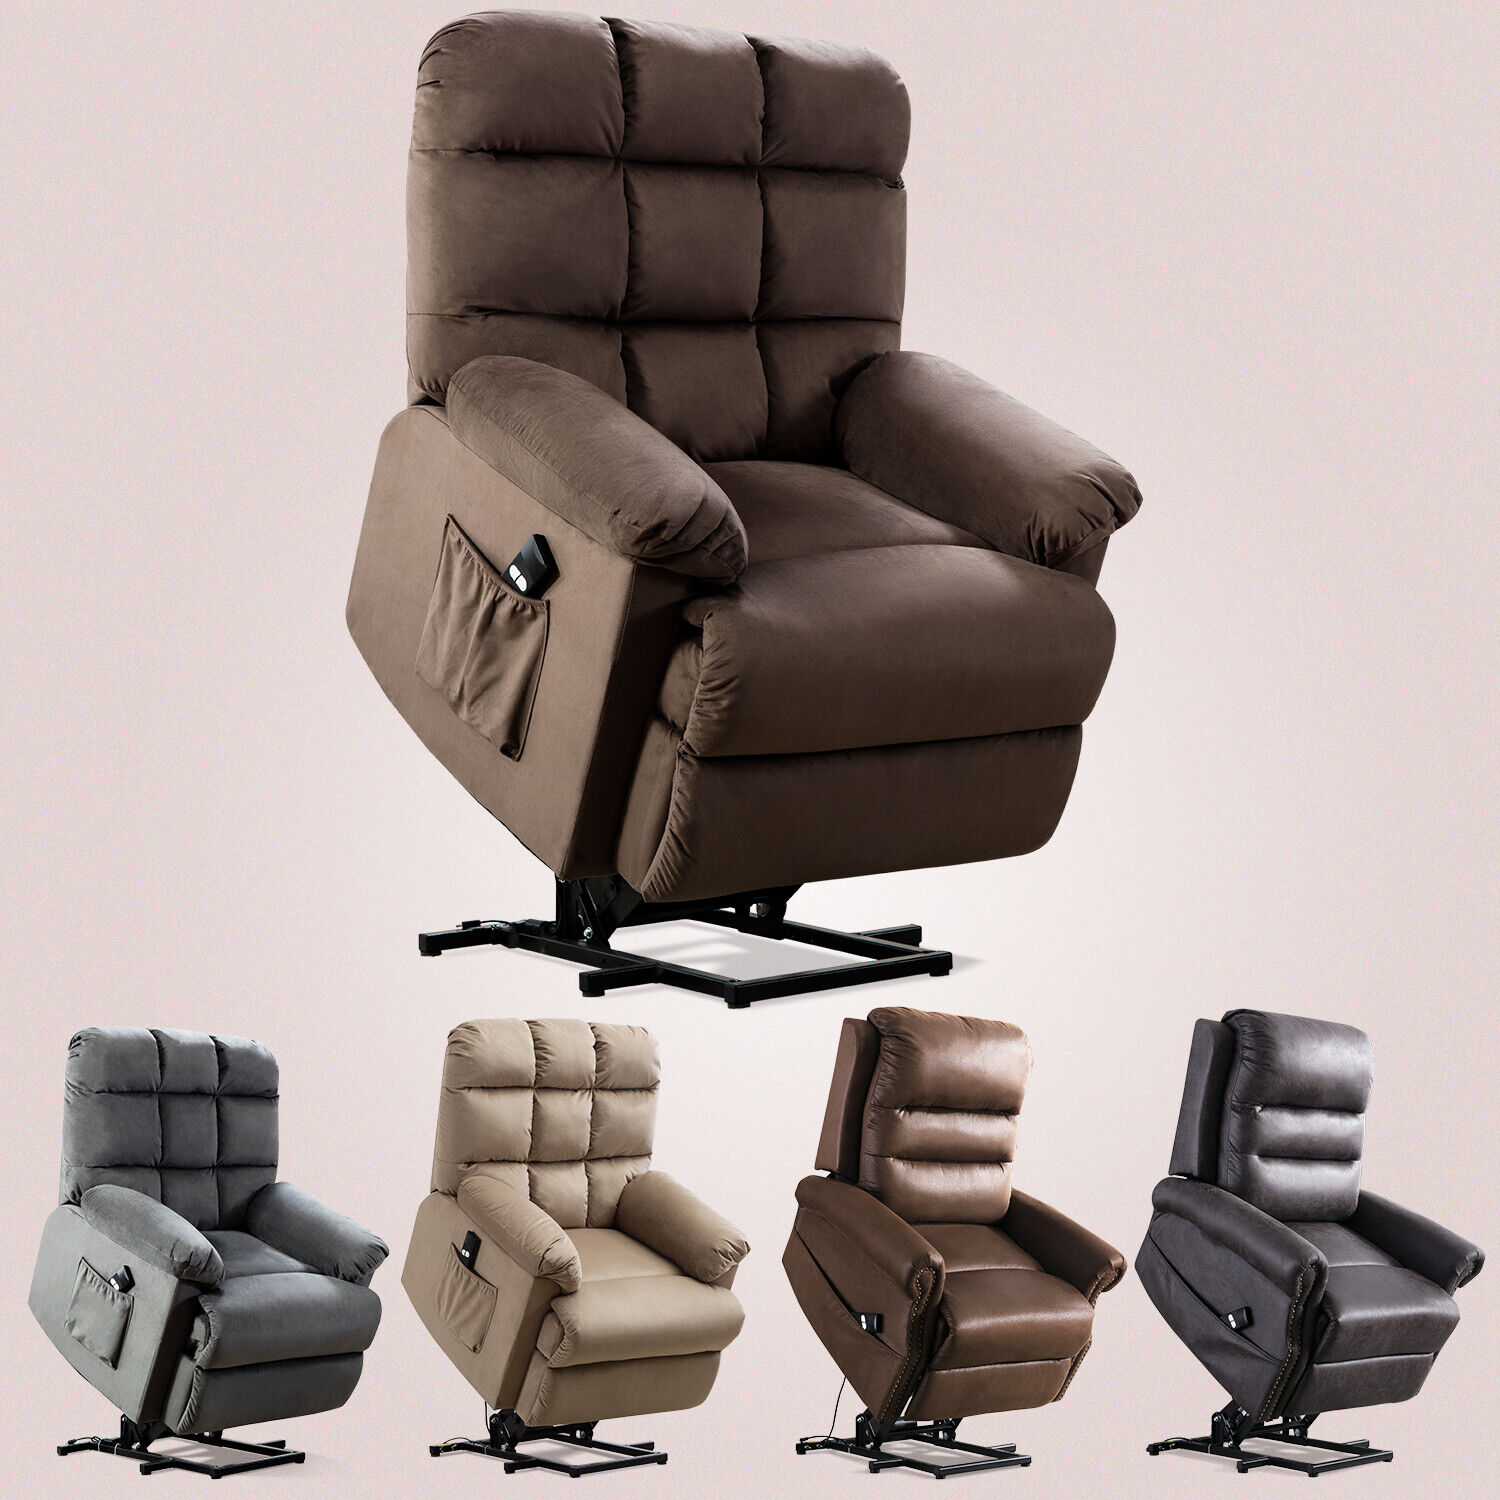 Power Lift Recliner Chair For Elderly Living Room Reclining